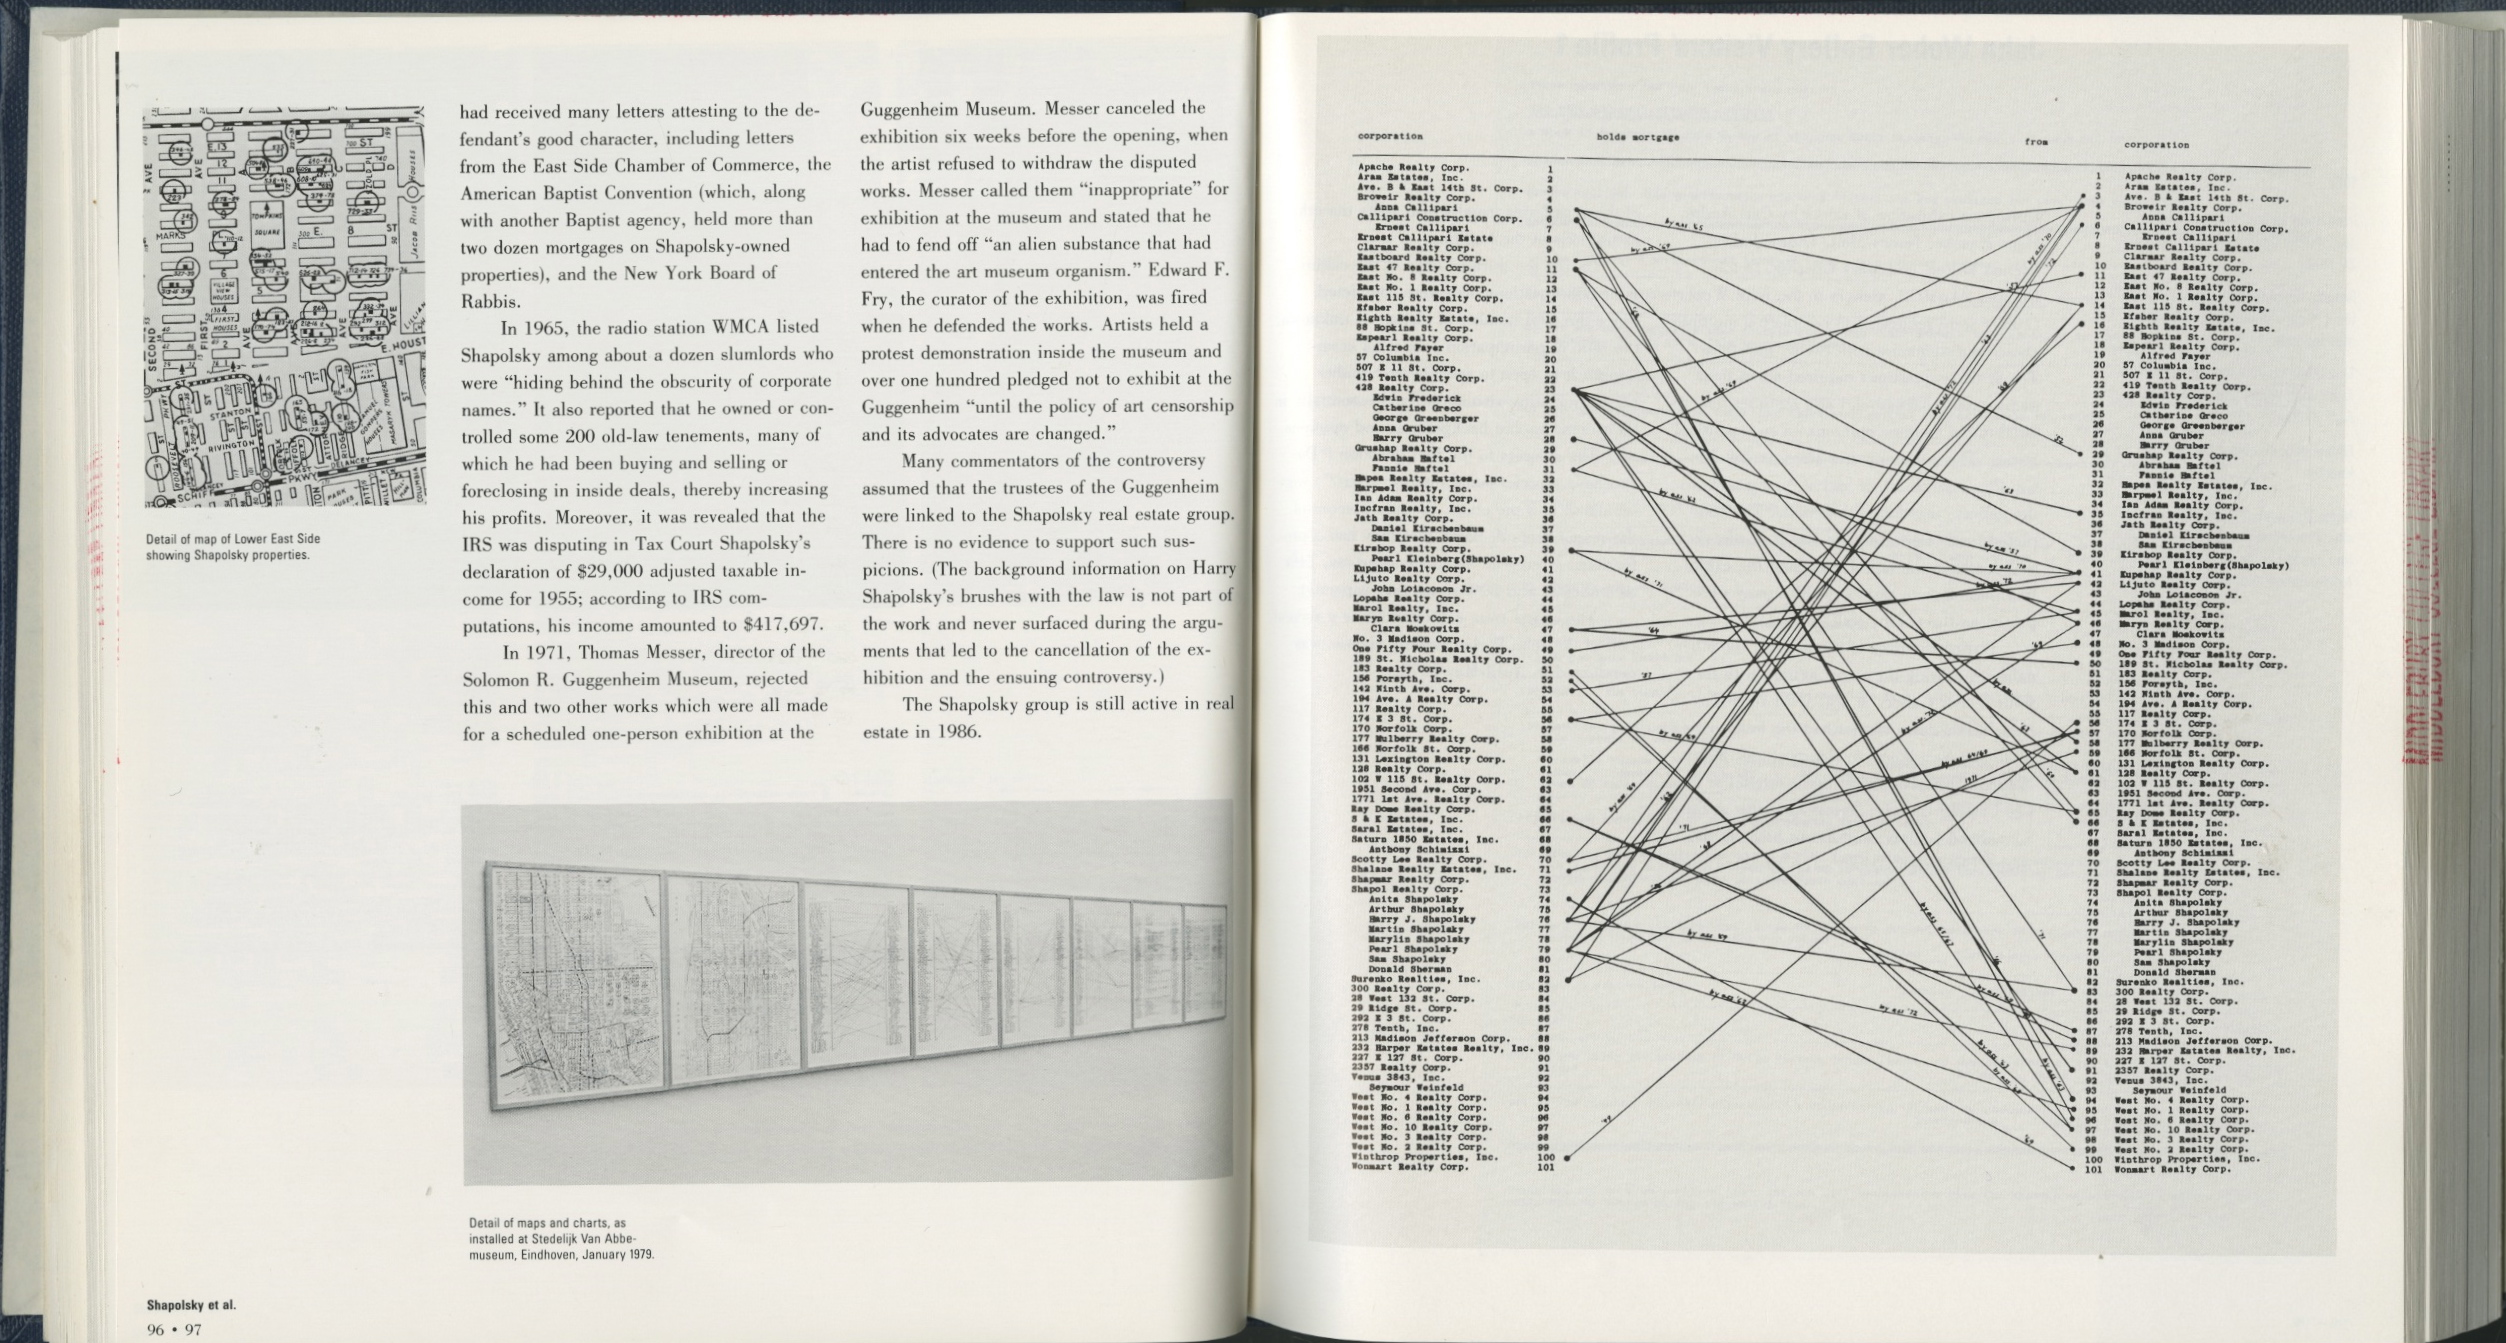 The works of the conceptual artist hans haacke